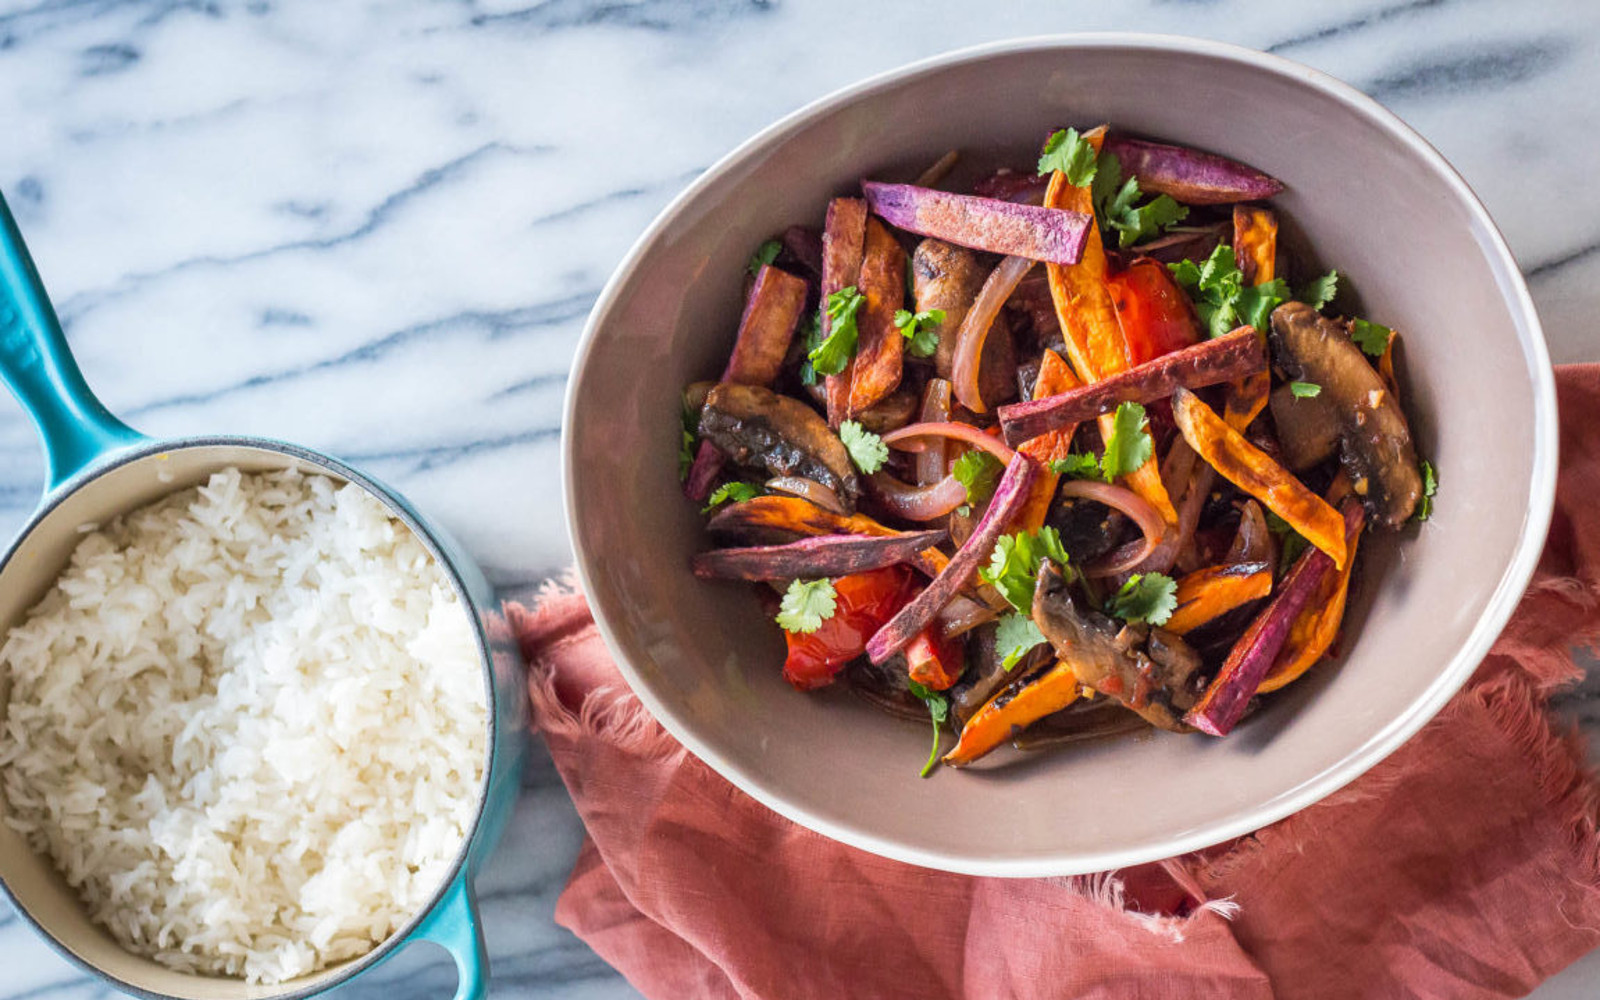 Plant-Based 'Fish' Sauces to Enhance the Flavor in Your Recipes